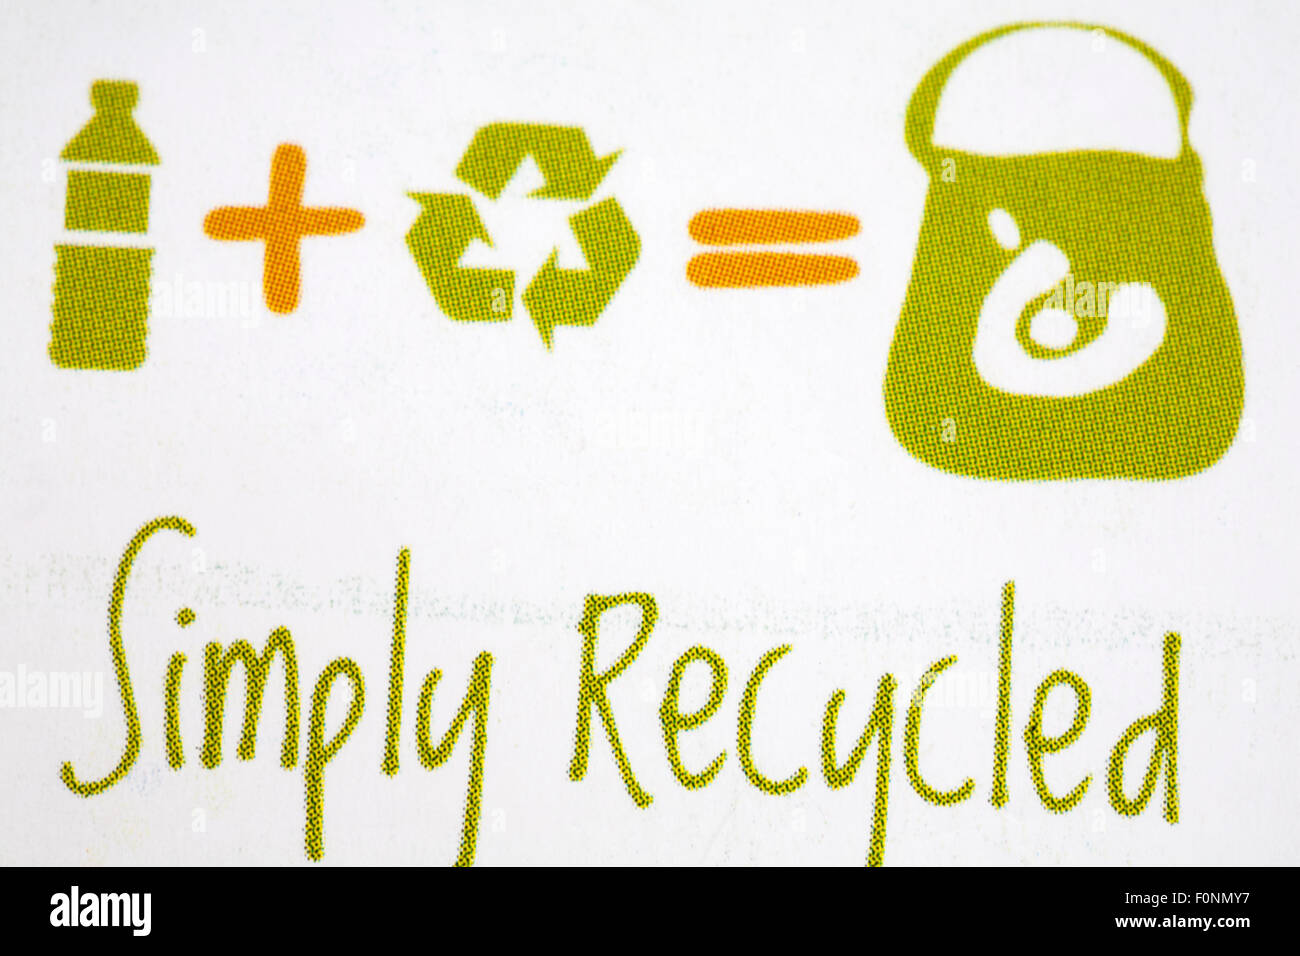 simply recycled symbols on label of Onya simply recycled bag - made from rPET Recycled Plastic Bottles - Stock Image